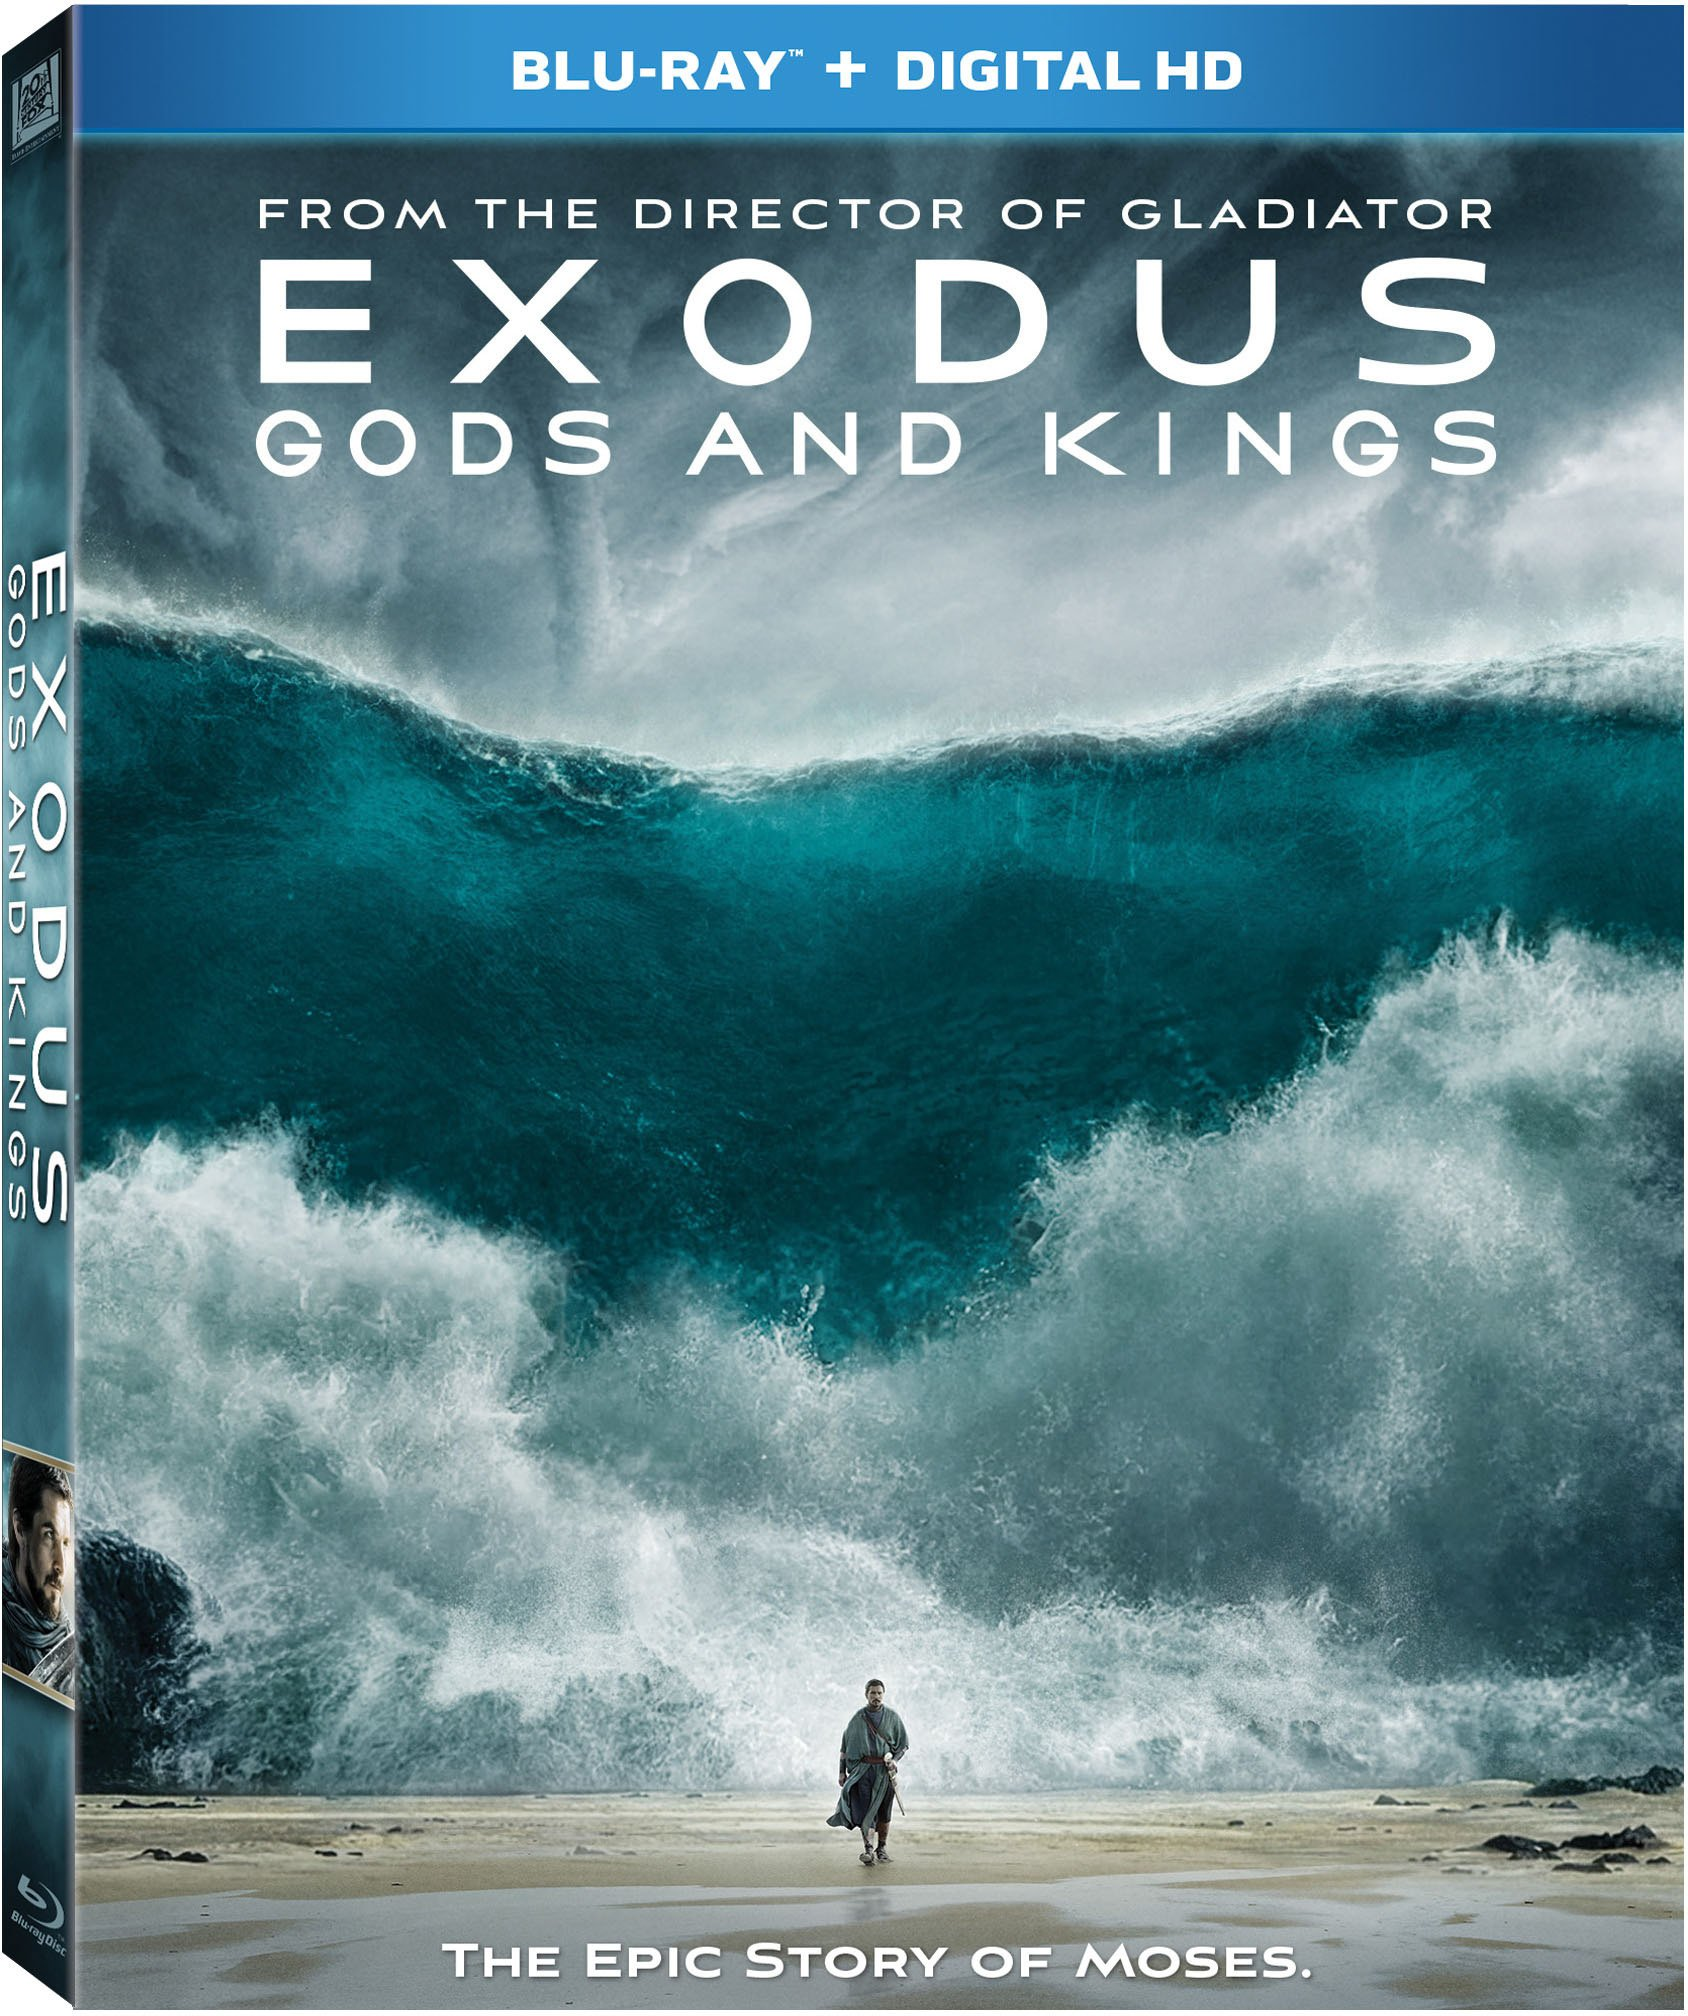 Blu-ray : Exodus: Gods and Kings (Dubbed, , Widescreen, Dolby, Digital Theater System)